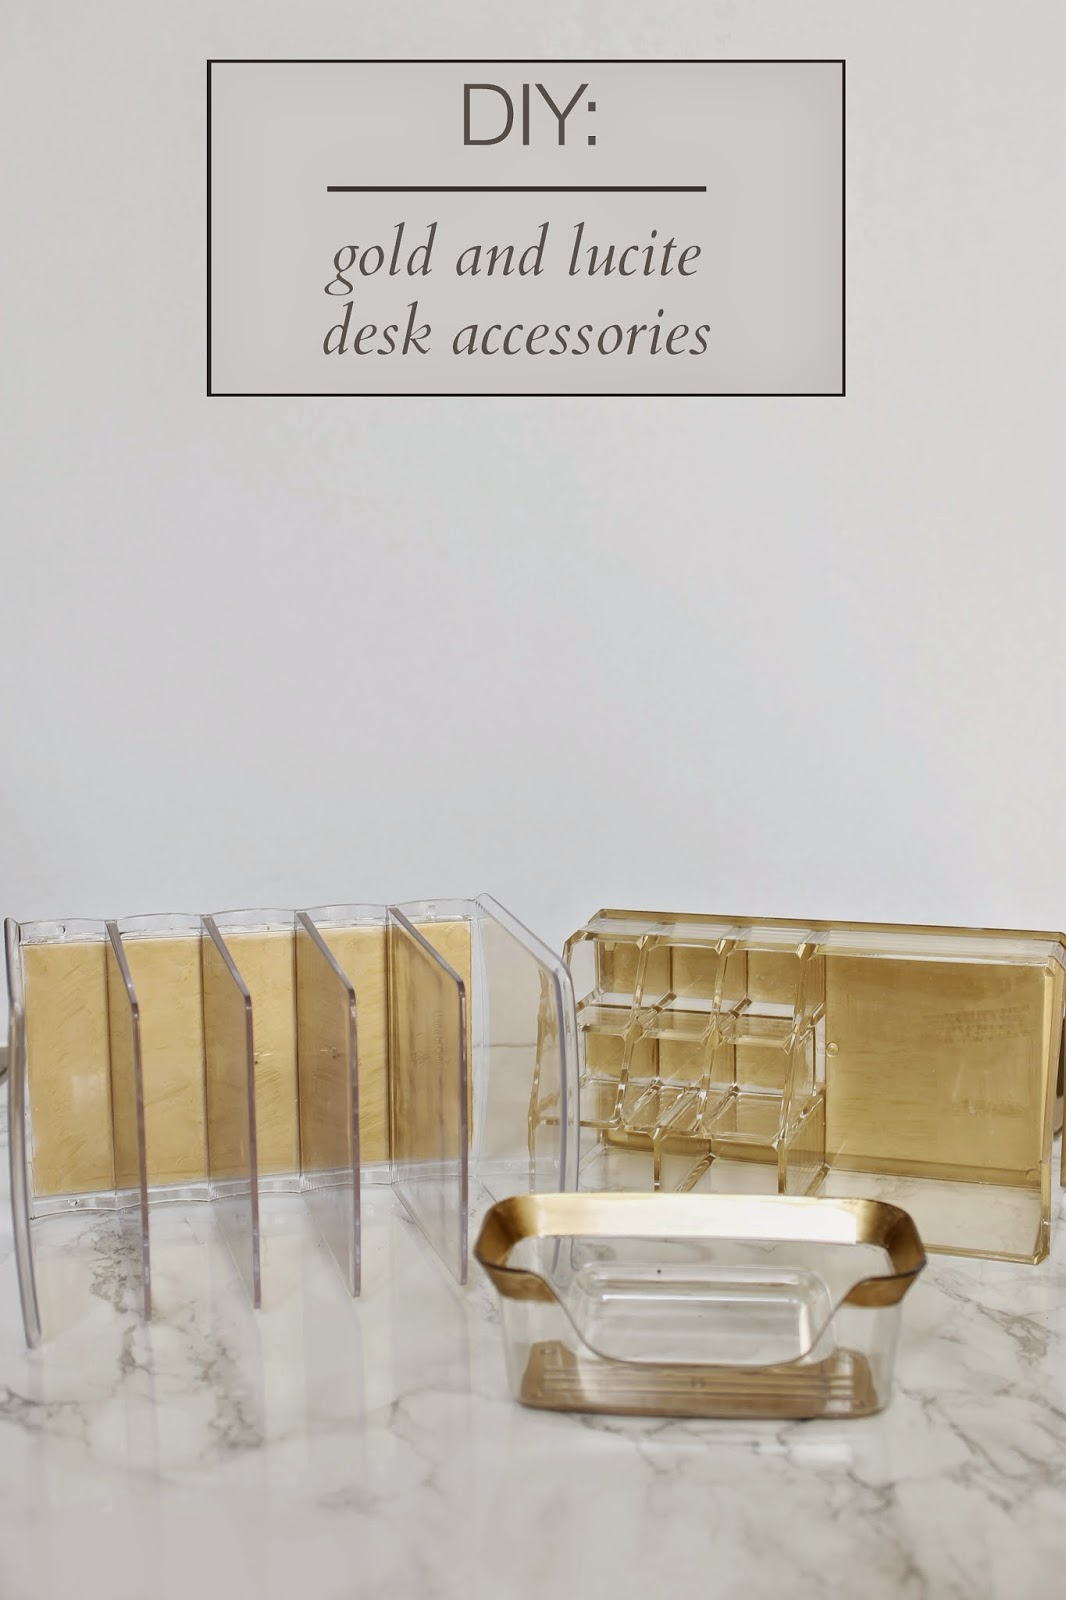 First Gather Your Acrylic Accessories I Purchased The Business Card Holder And Letter Organizer At Target Multi Purpose Tj